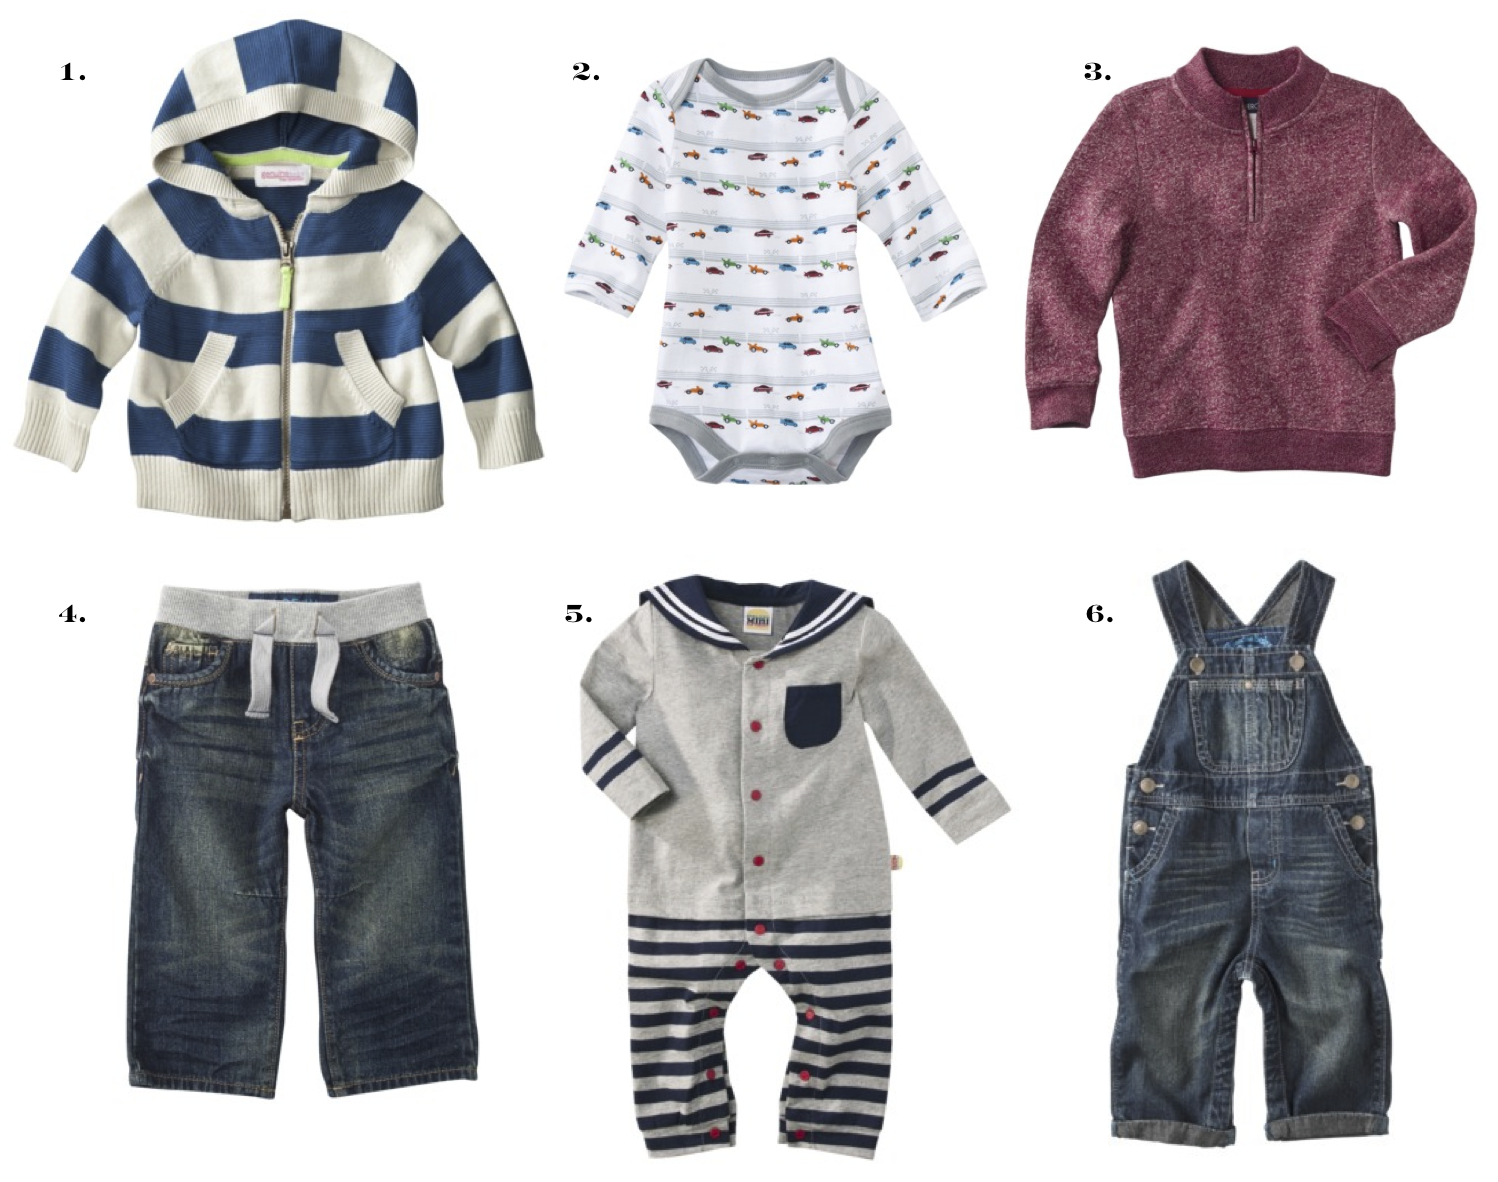 We have the biggest selection of boys' clothing, including boys' shirts, boys' pants, and boys' jackets EMS Stores.